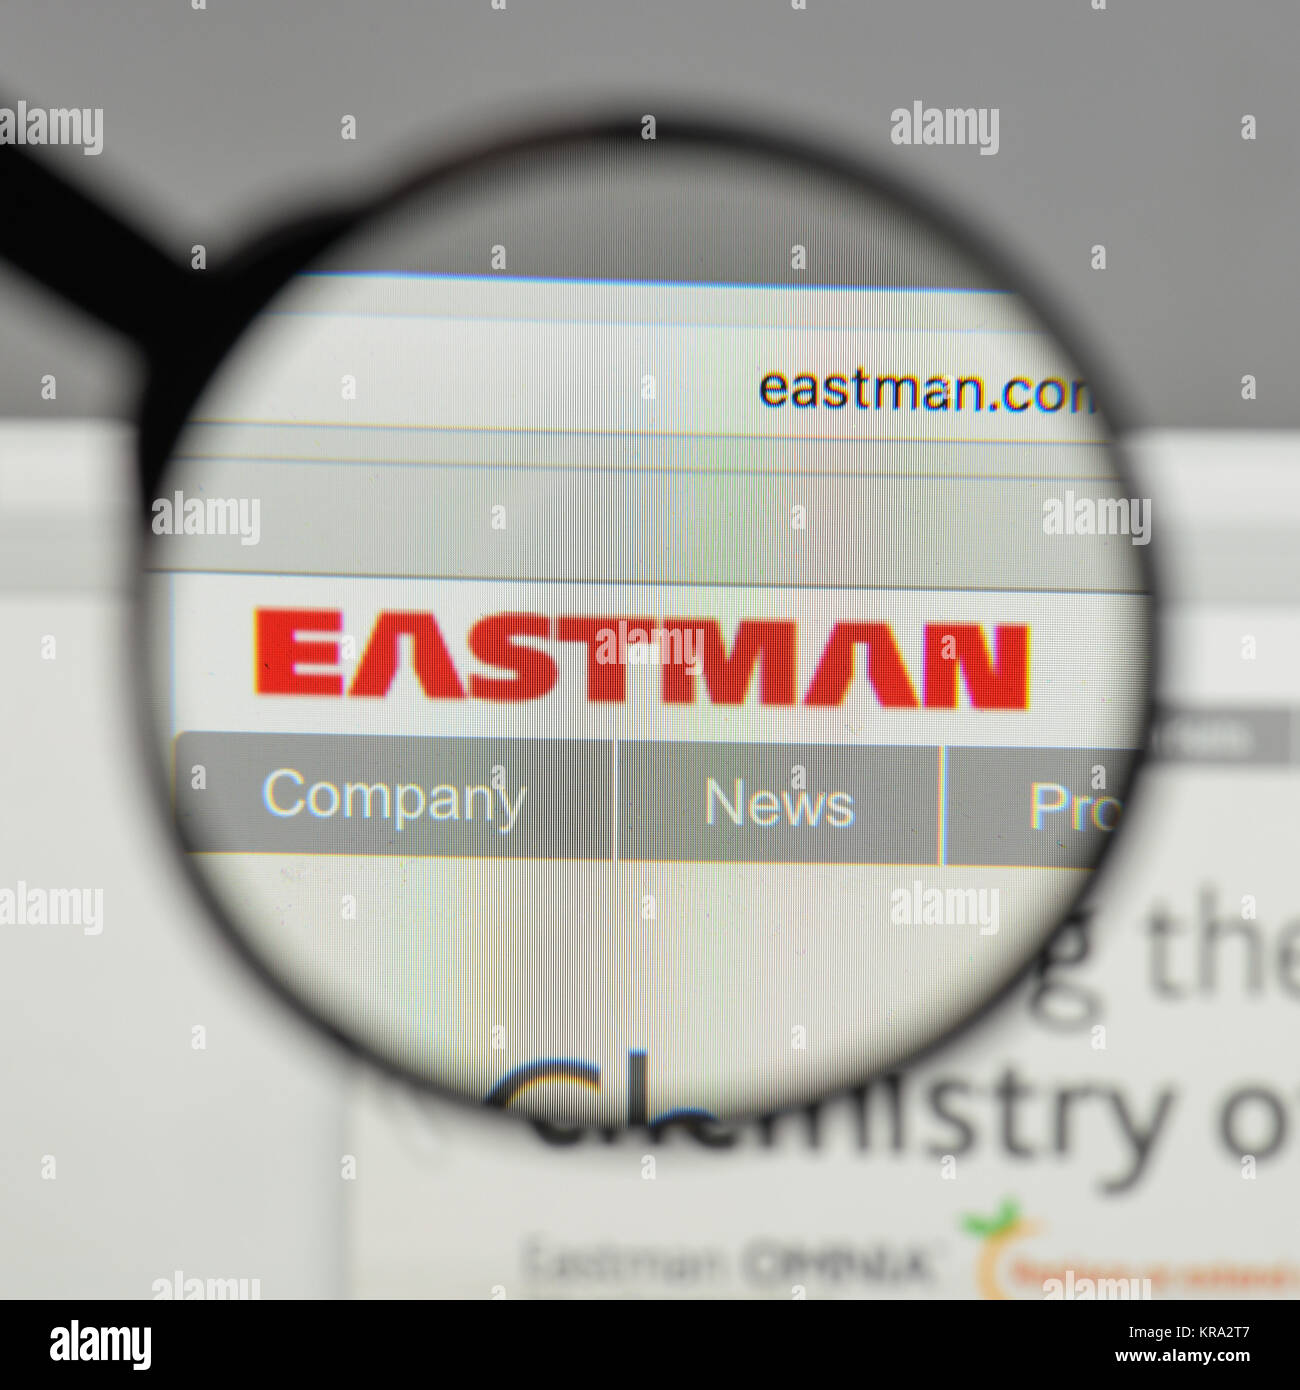 Eastman Chemical Stock Photos & Eastman Chemical Stock Images - Alamy